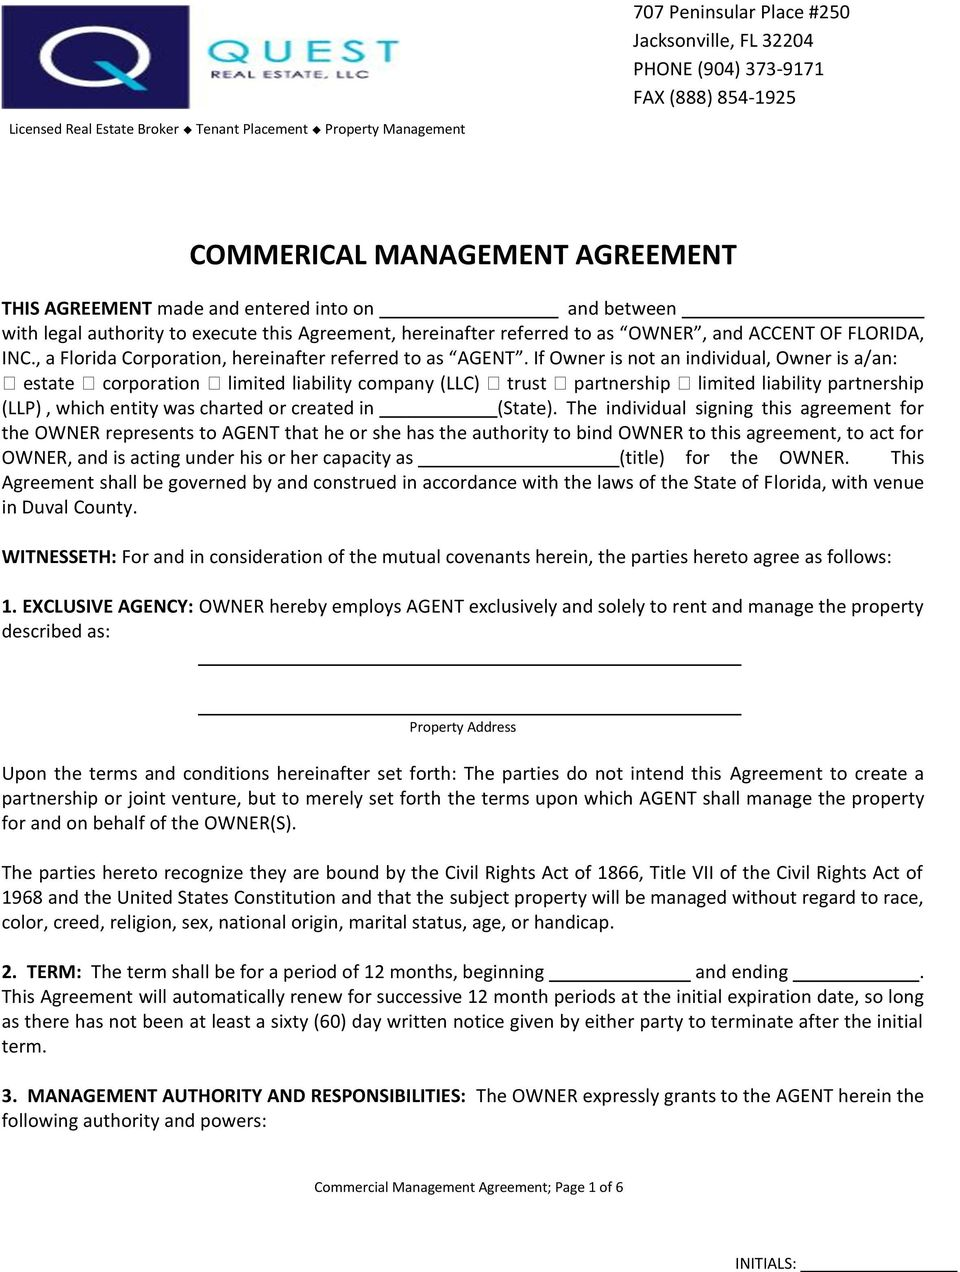 Commerical Management Agreement Pdf